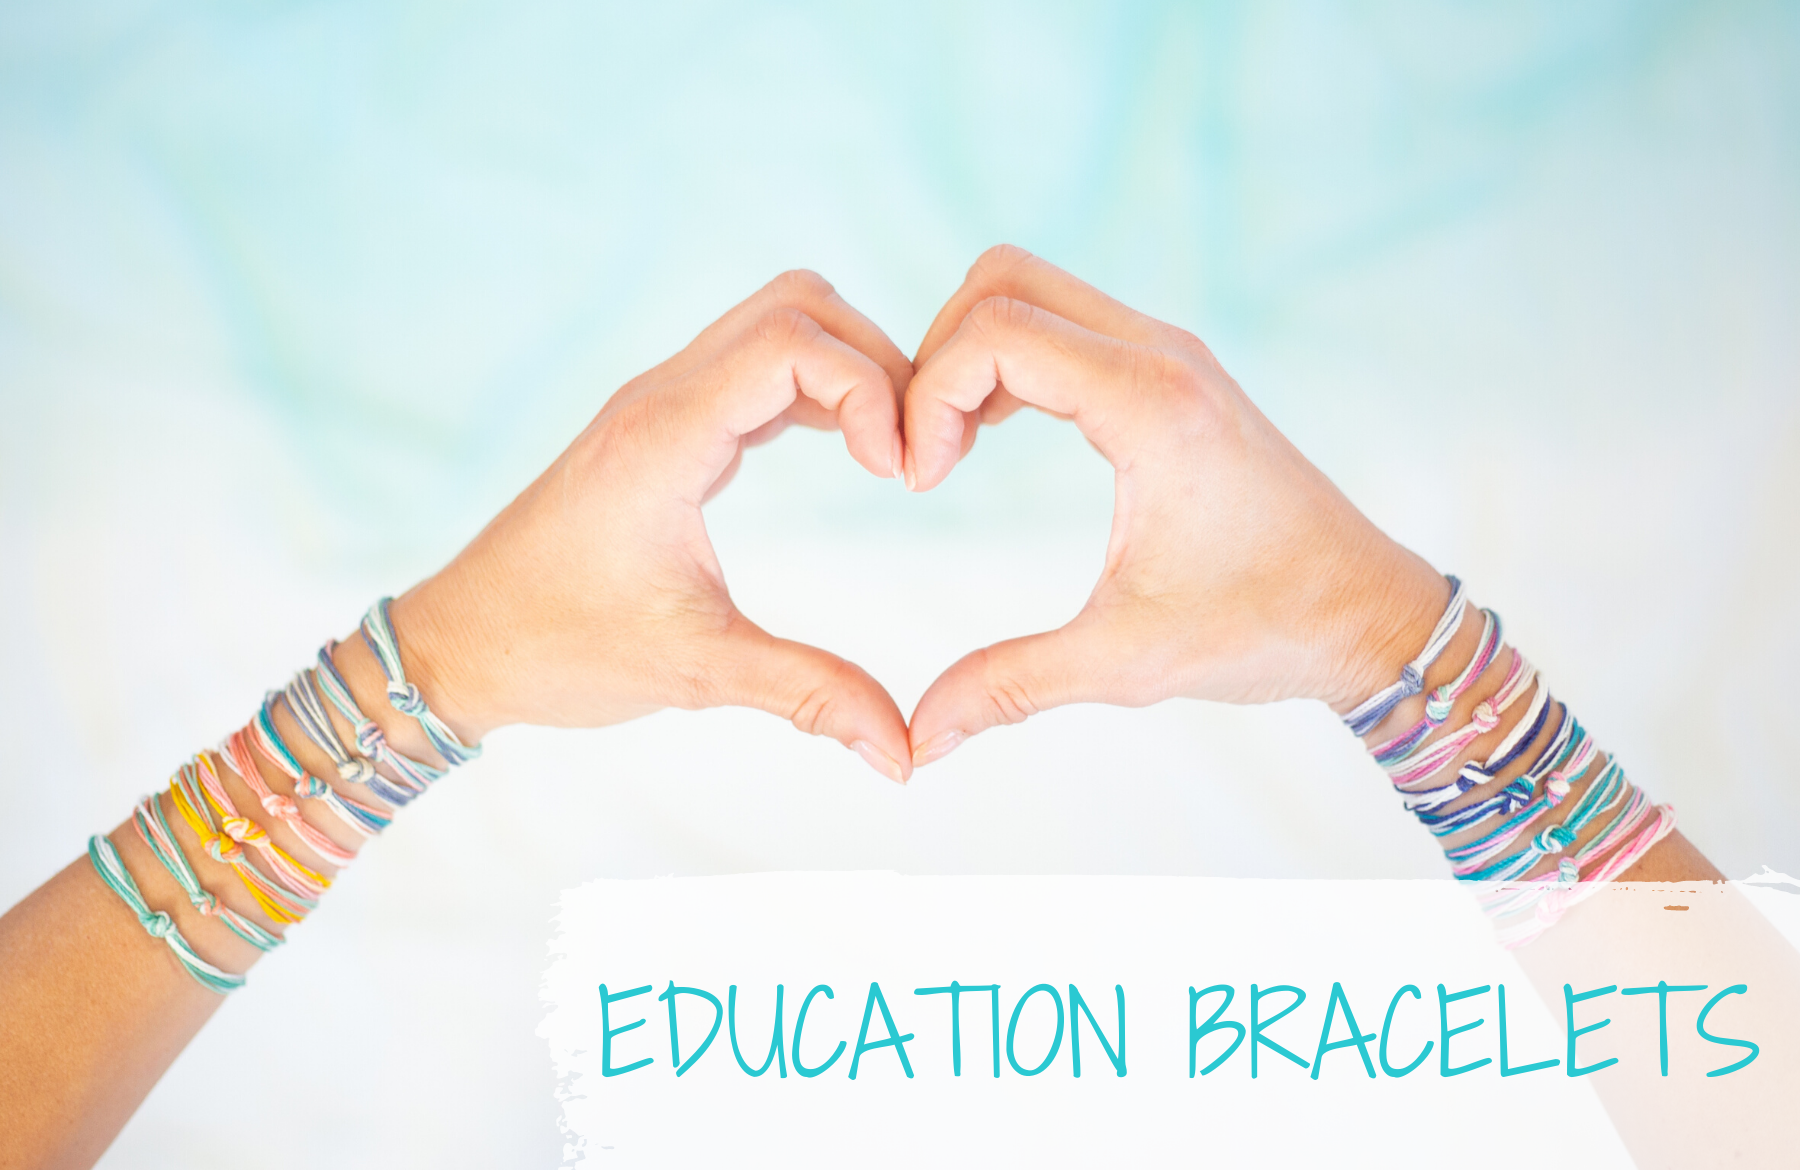 Education Bracelets